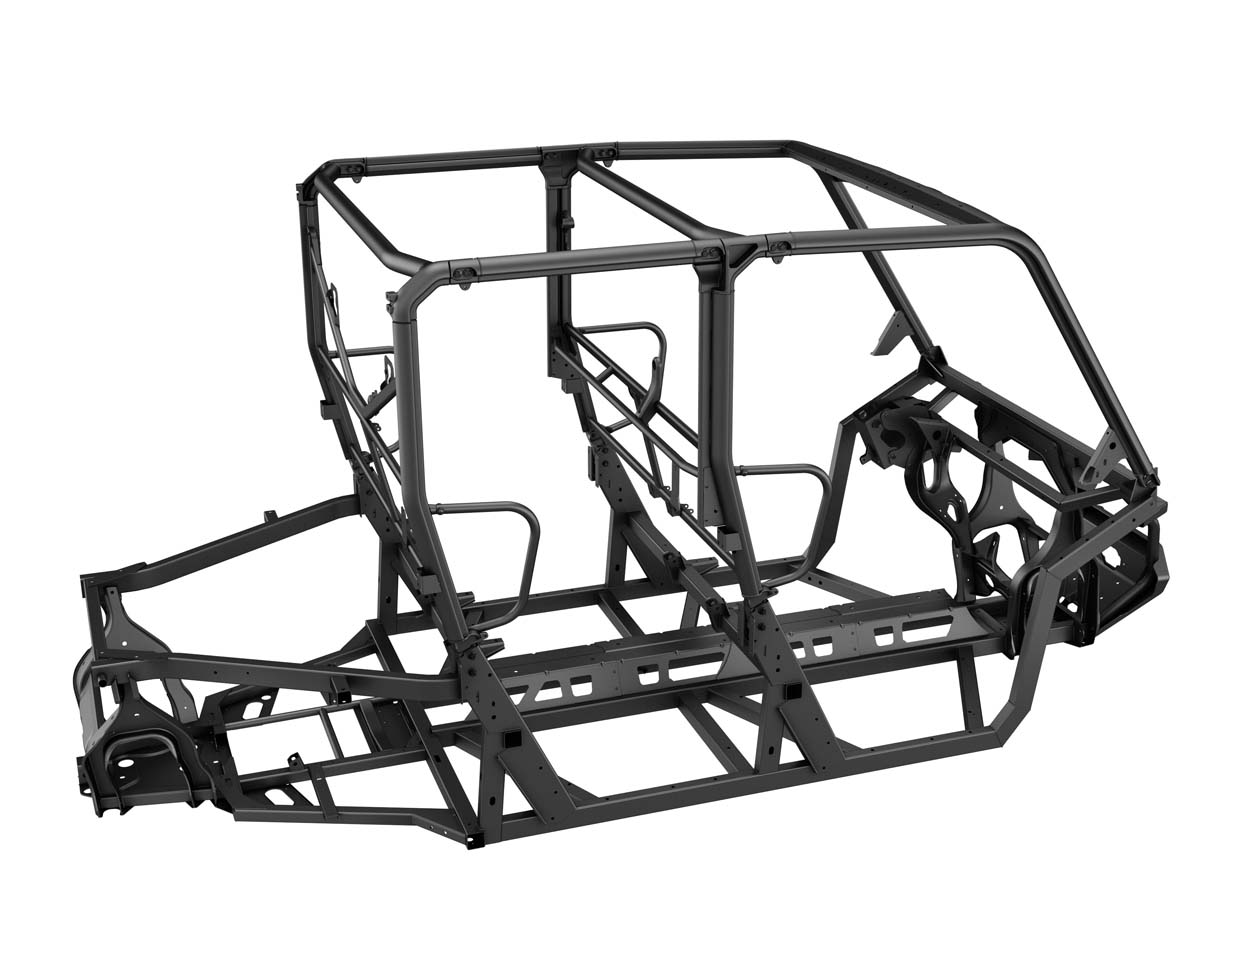 Brp S New Six Passenger Can Am Defender Max Family Of